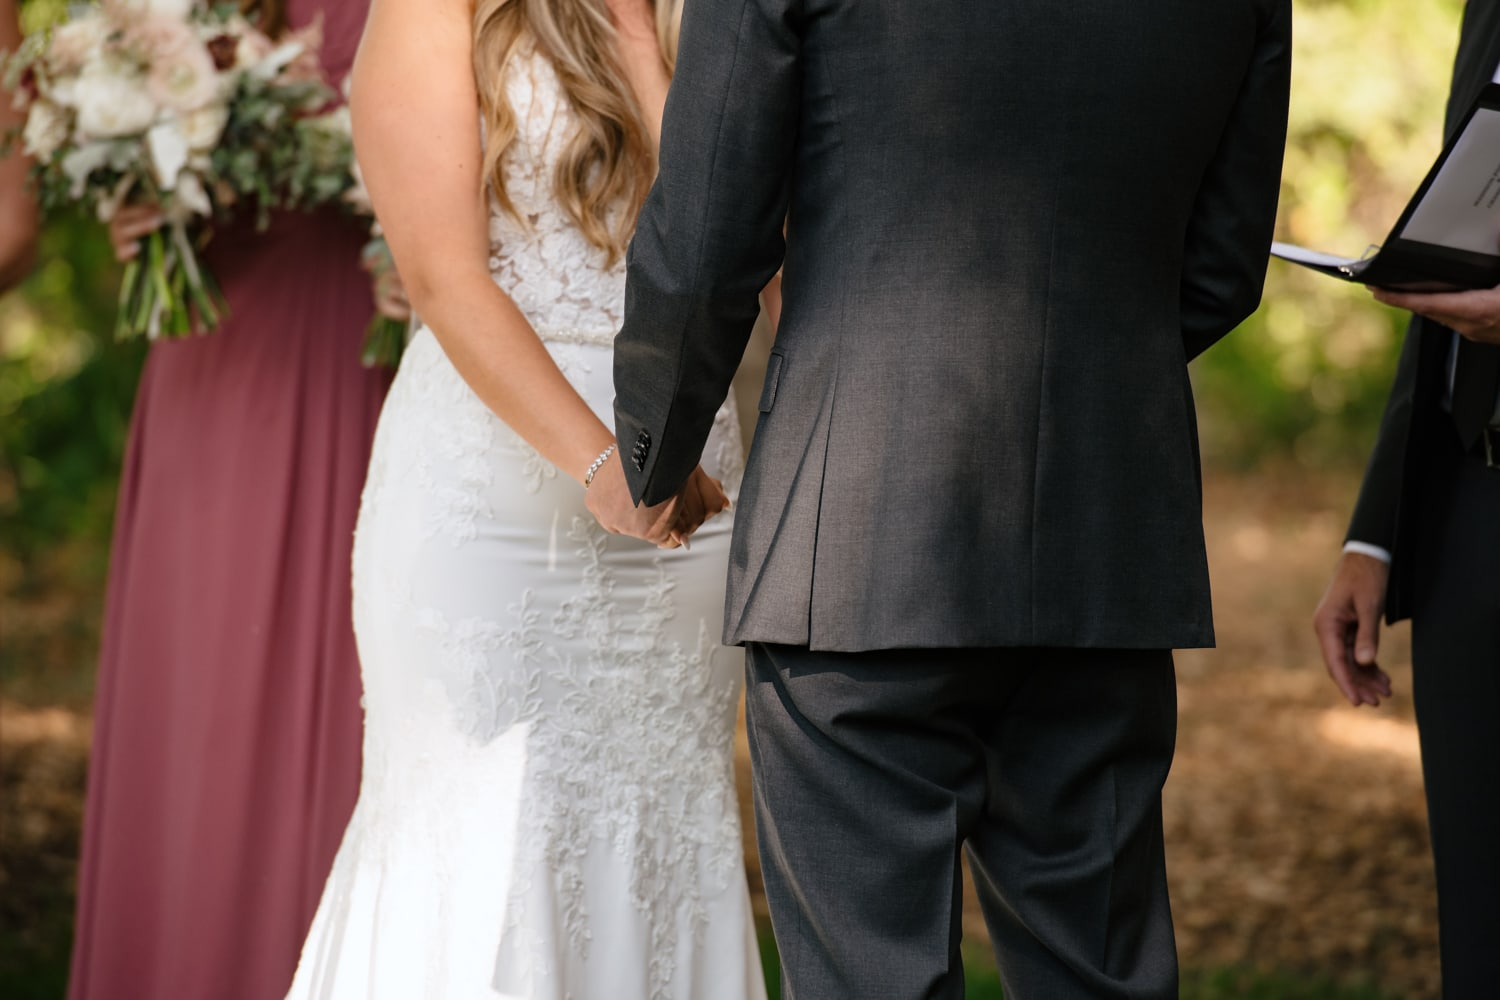 Bride and groom holding hands at The Stone House wedding venue